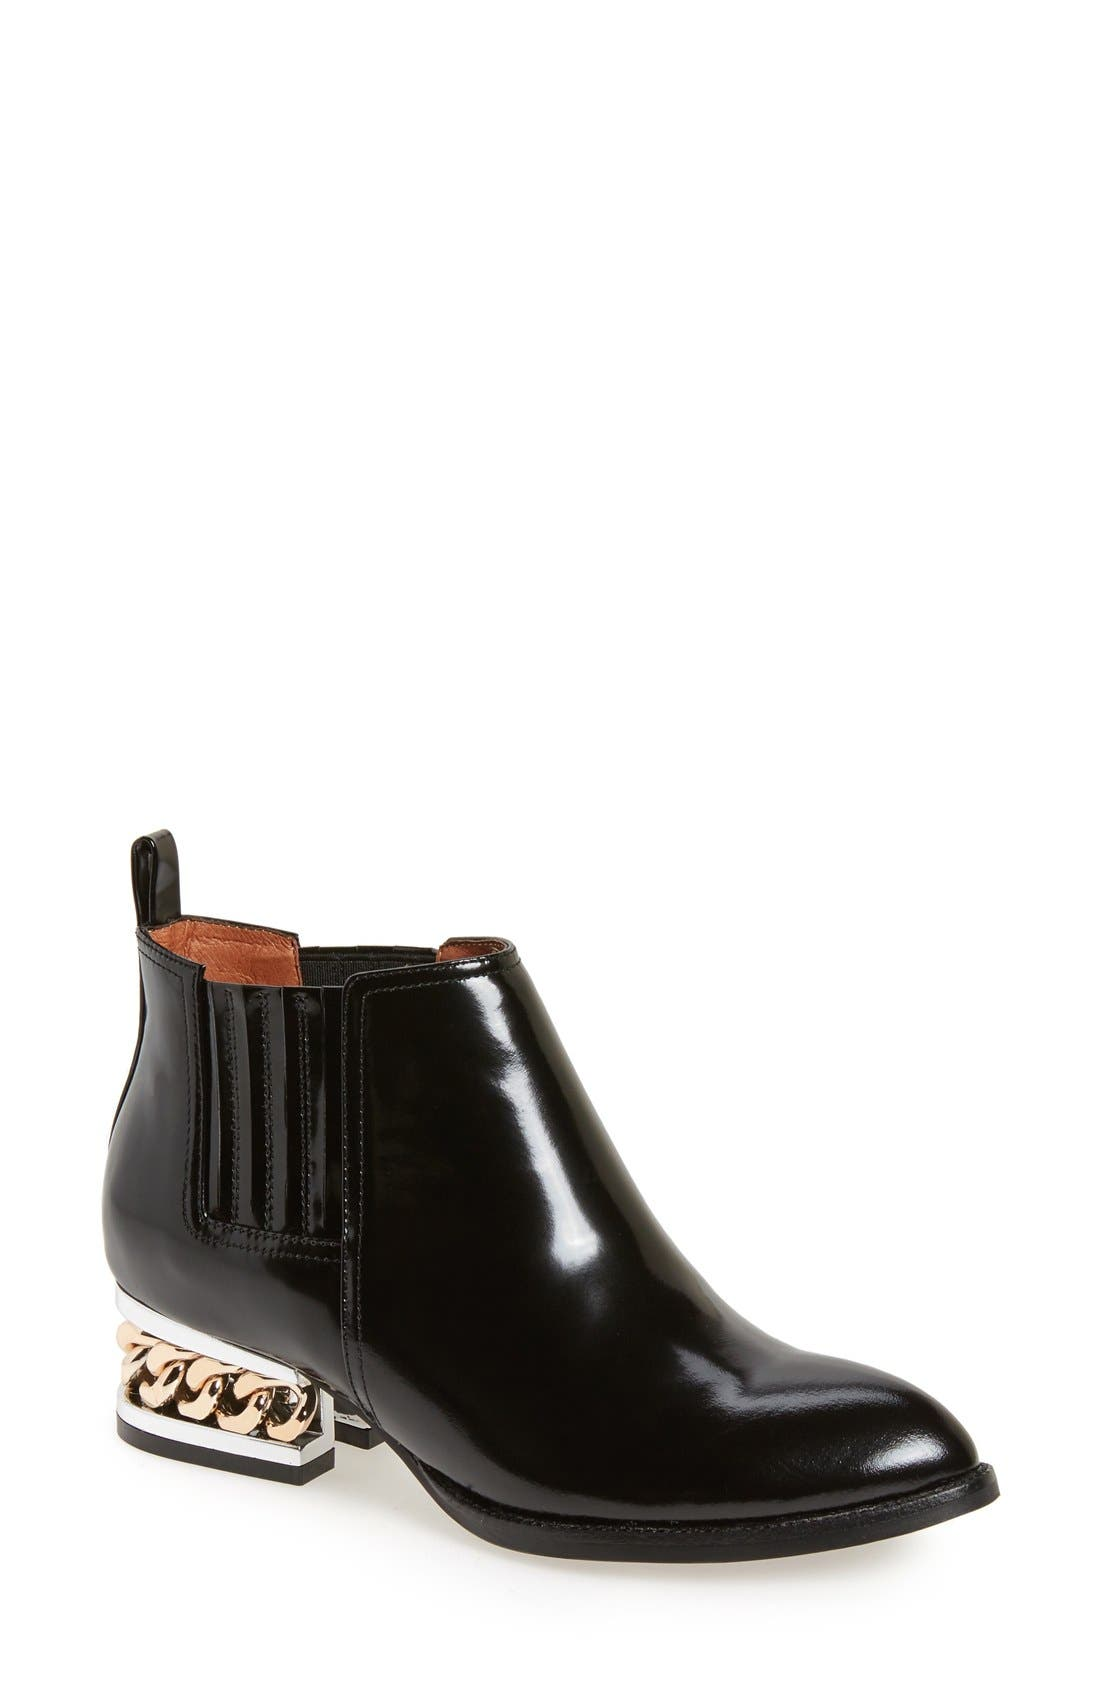 Alternate Image 1 Selected - Jeffrey Campbell 'Metcalf' Caged Heel Bootie (Women)